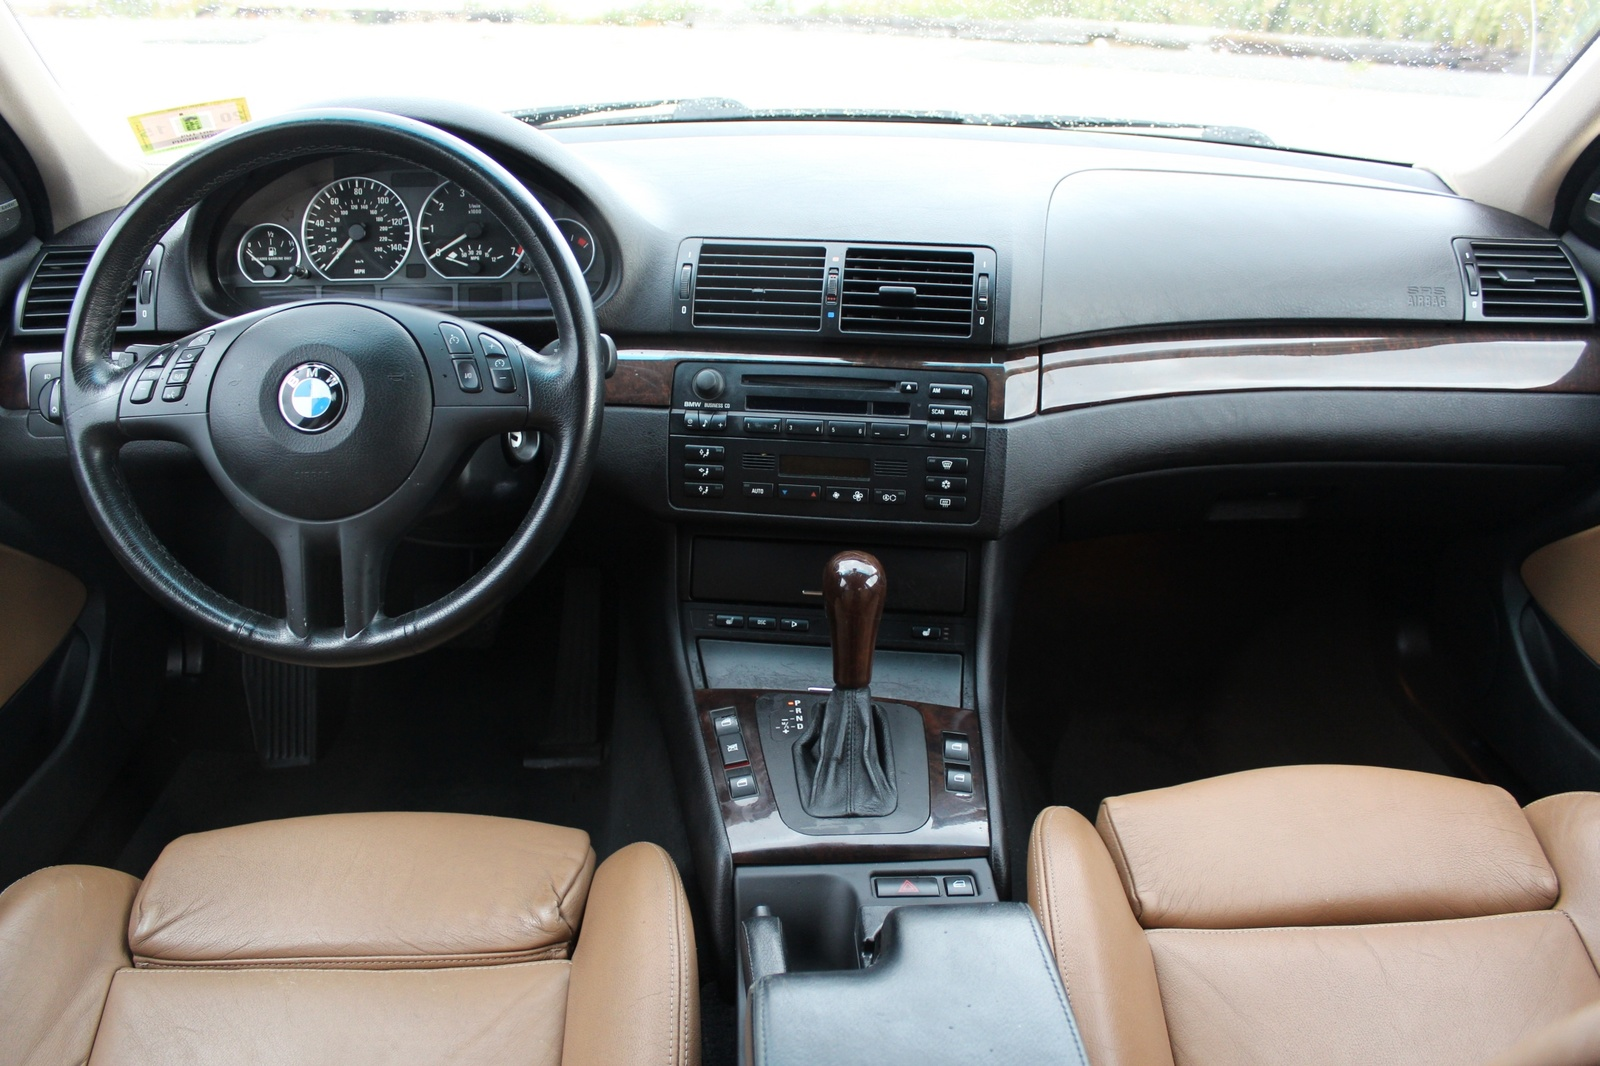 2003 Bmw 3 Series Interior Pictures Cargurus